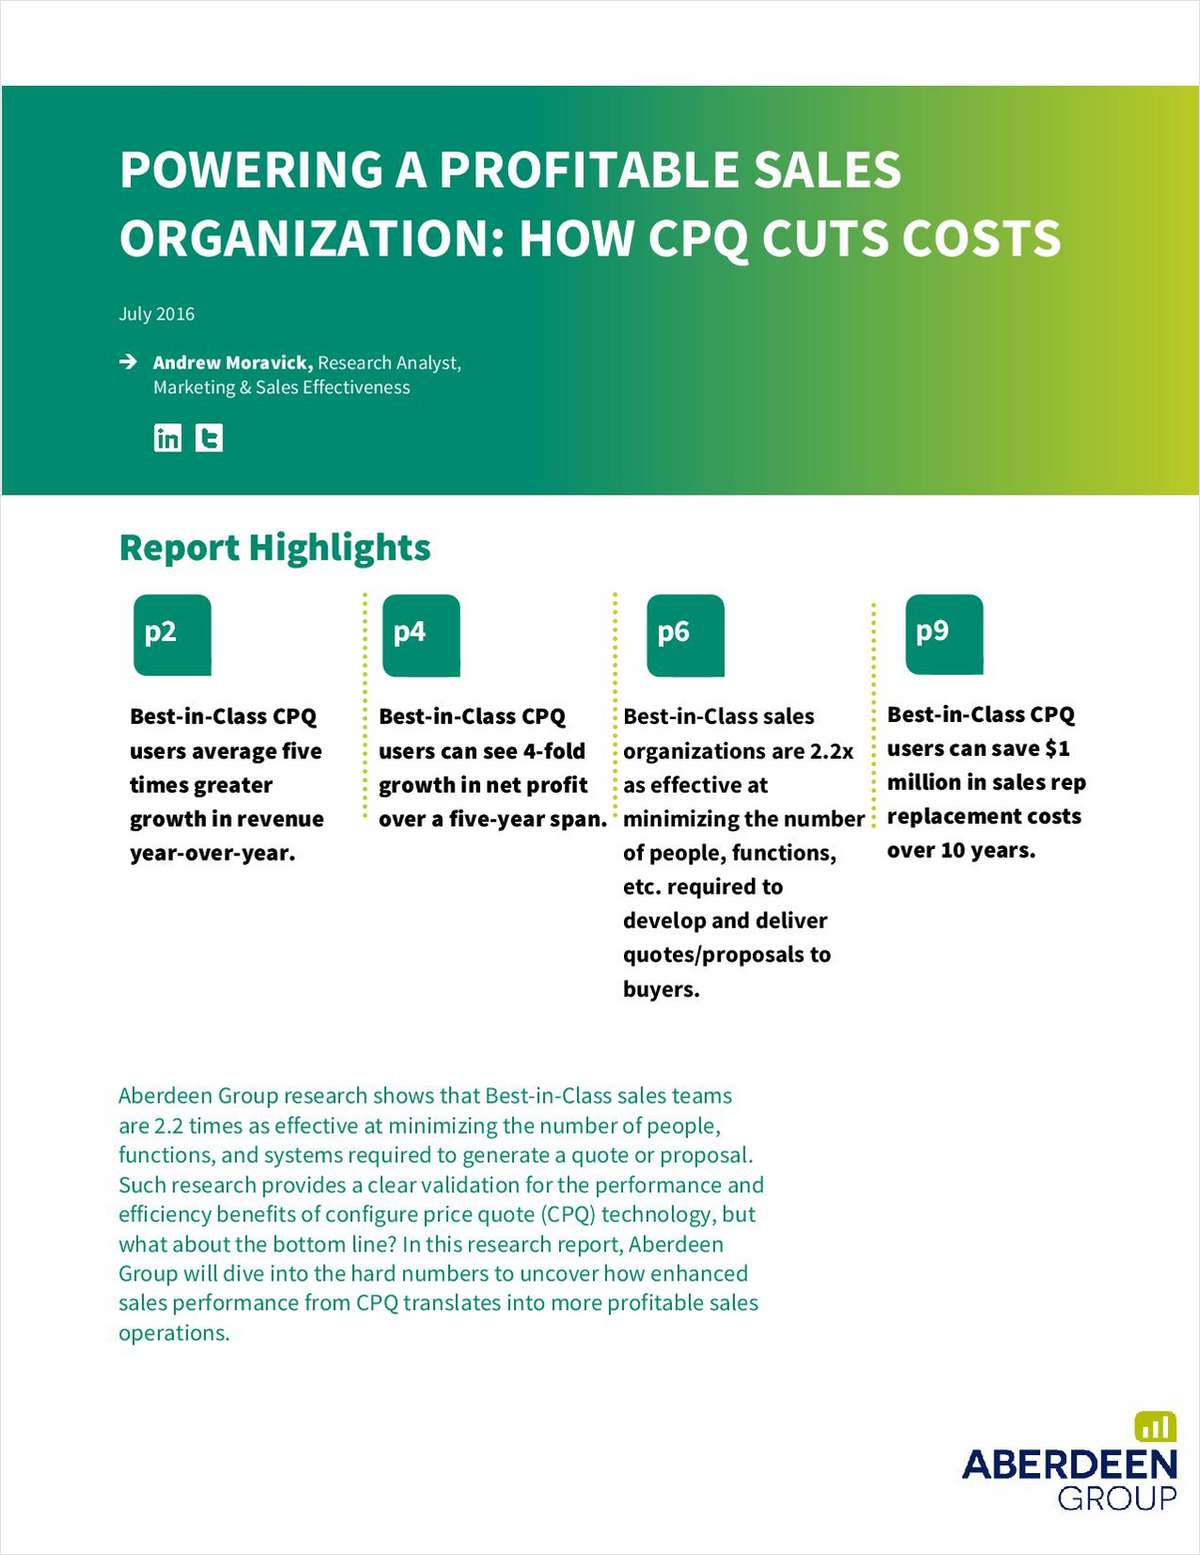 Aberdeen Report: Powering a Profitable Sales Organization: How CPQ Cuts Costs